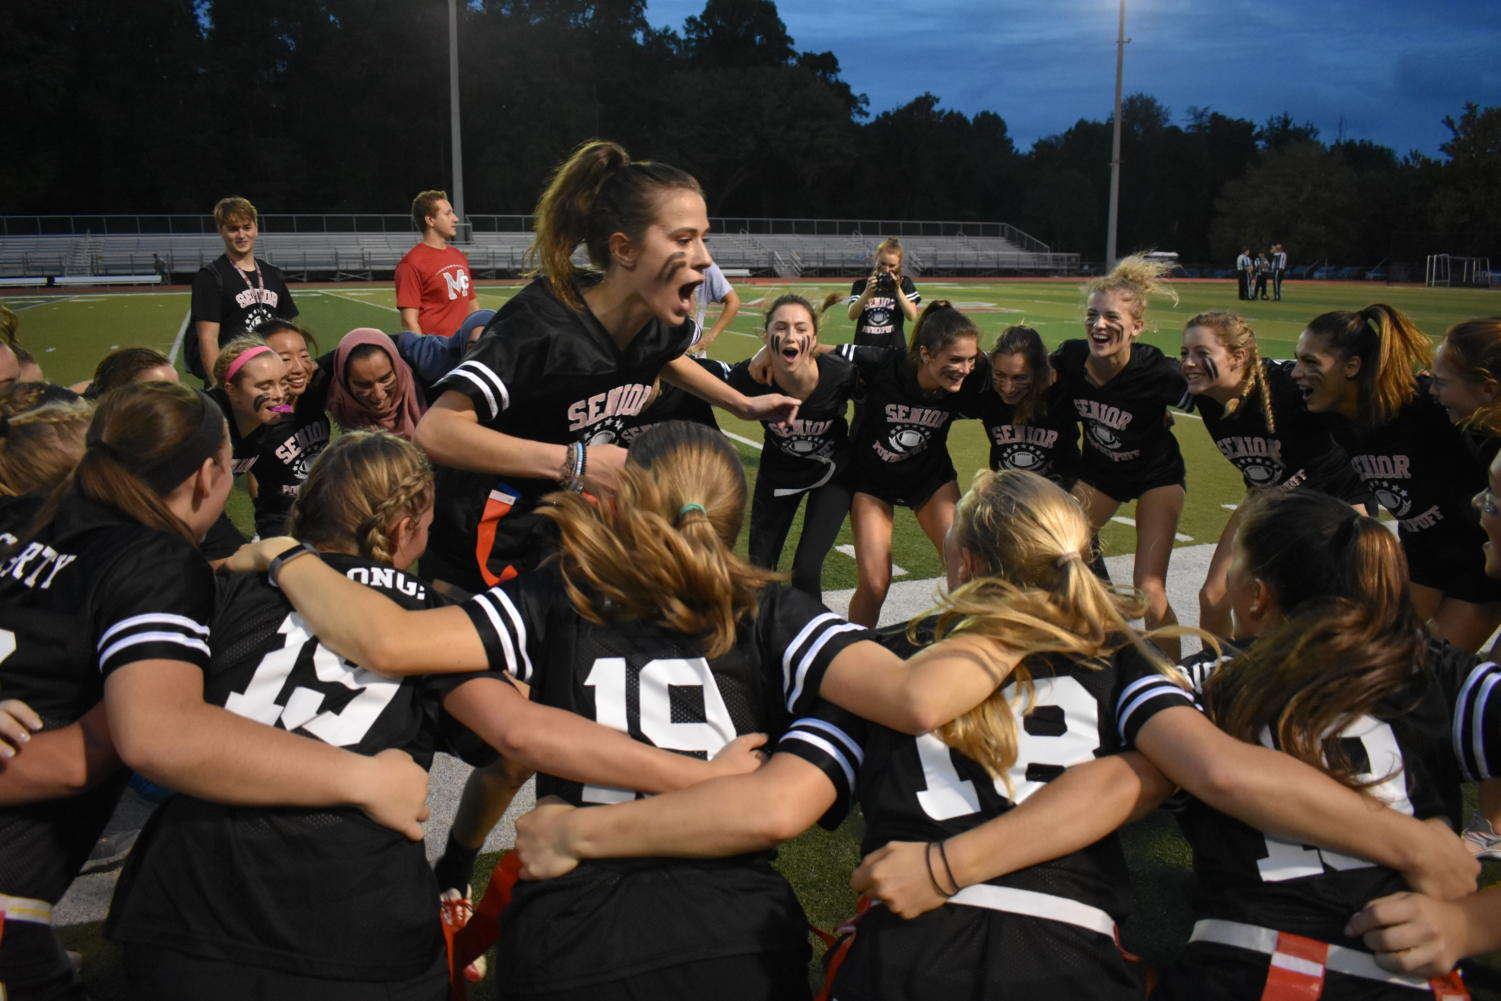 Senior JaneAnne Tvedt rallies her team during a time-out at the annual Powderpuff game on Oct. 10. The senior team won the match-up 8-0, marking the class' second win in a row. (photo by Maren Kranking)